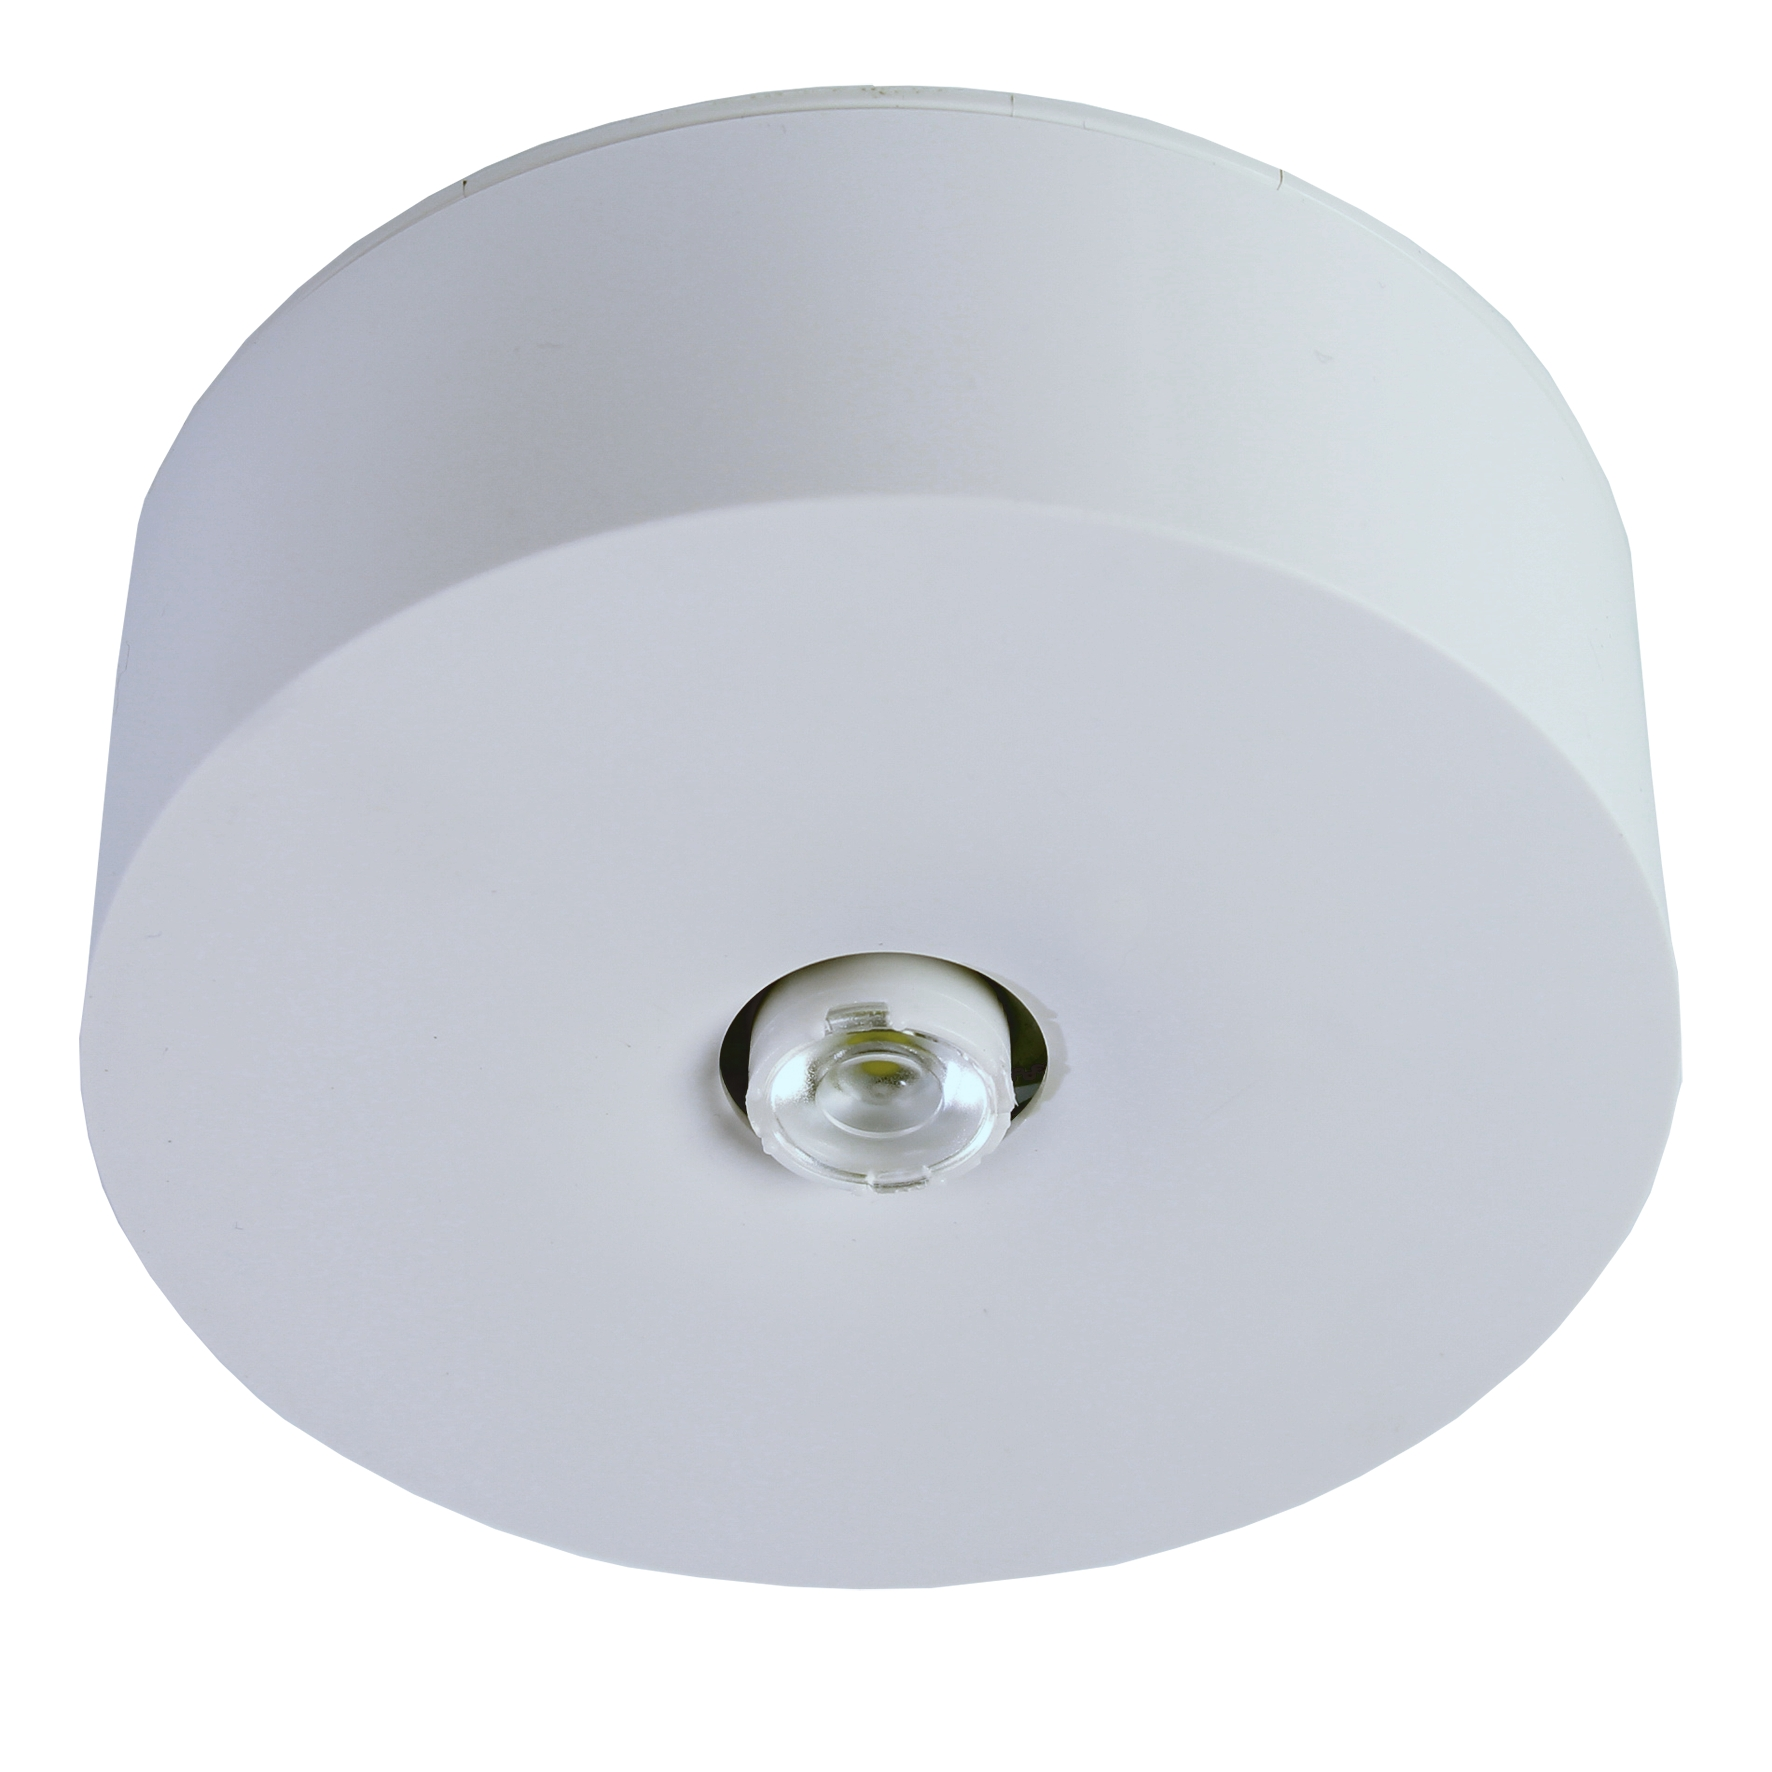 Notleuchte IL Wireless 1x3W ERT-LED 3h 230VAC Spot